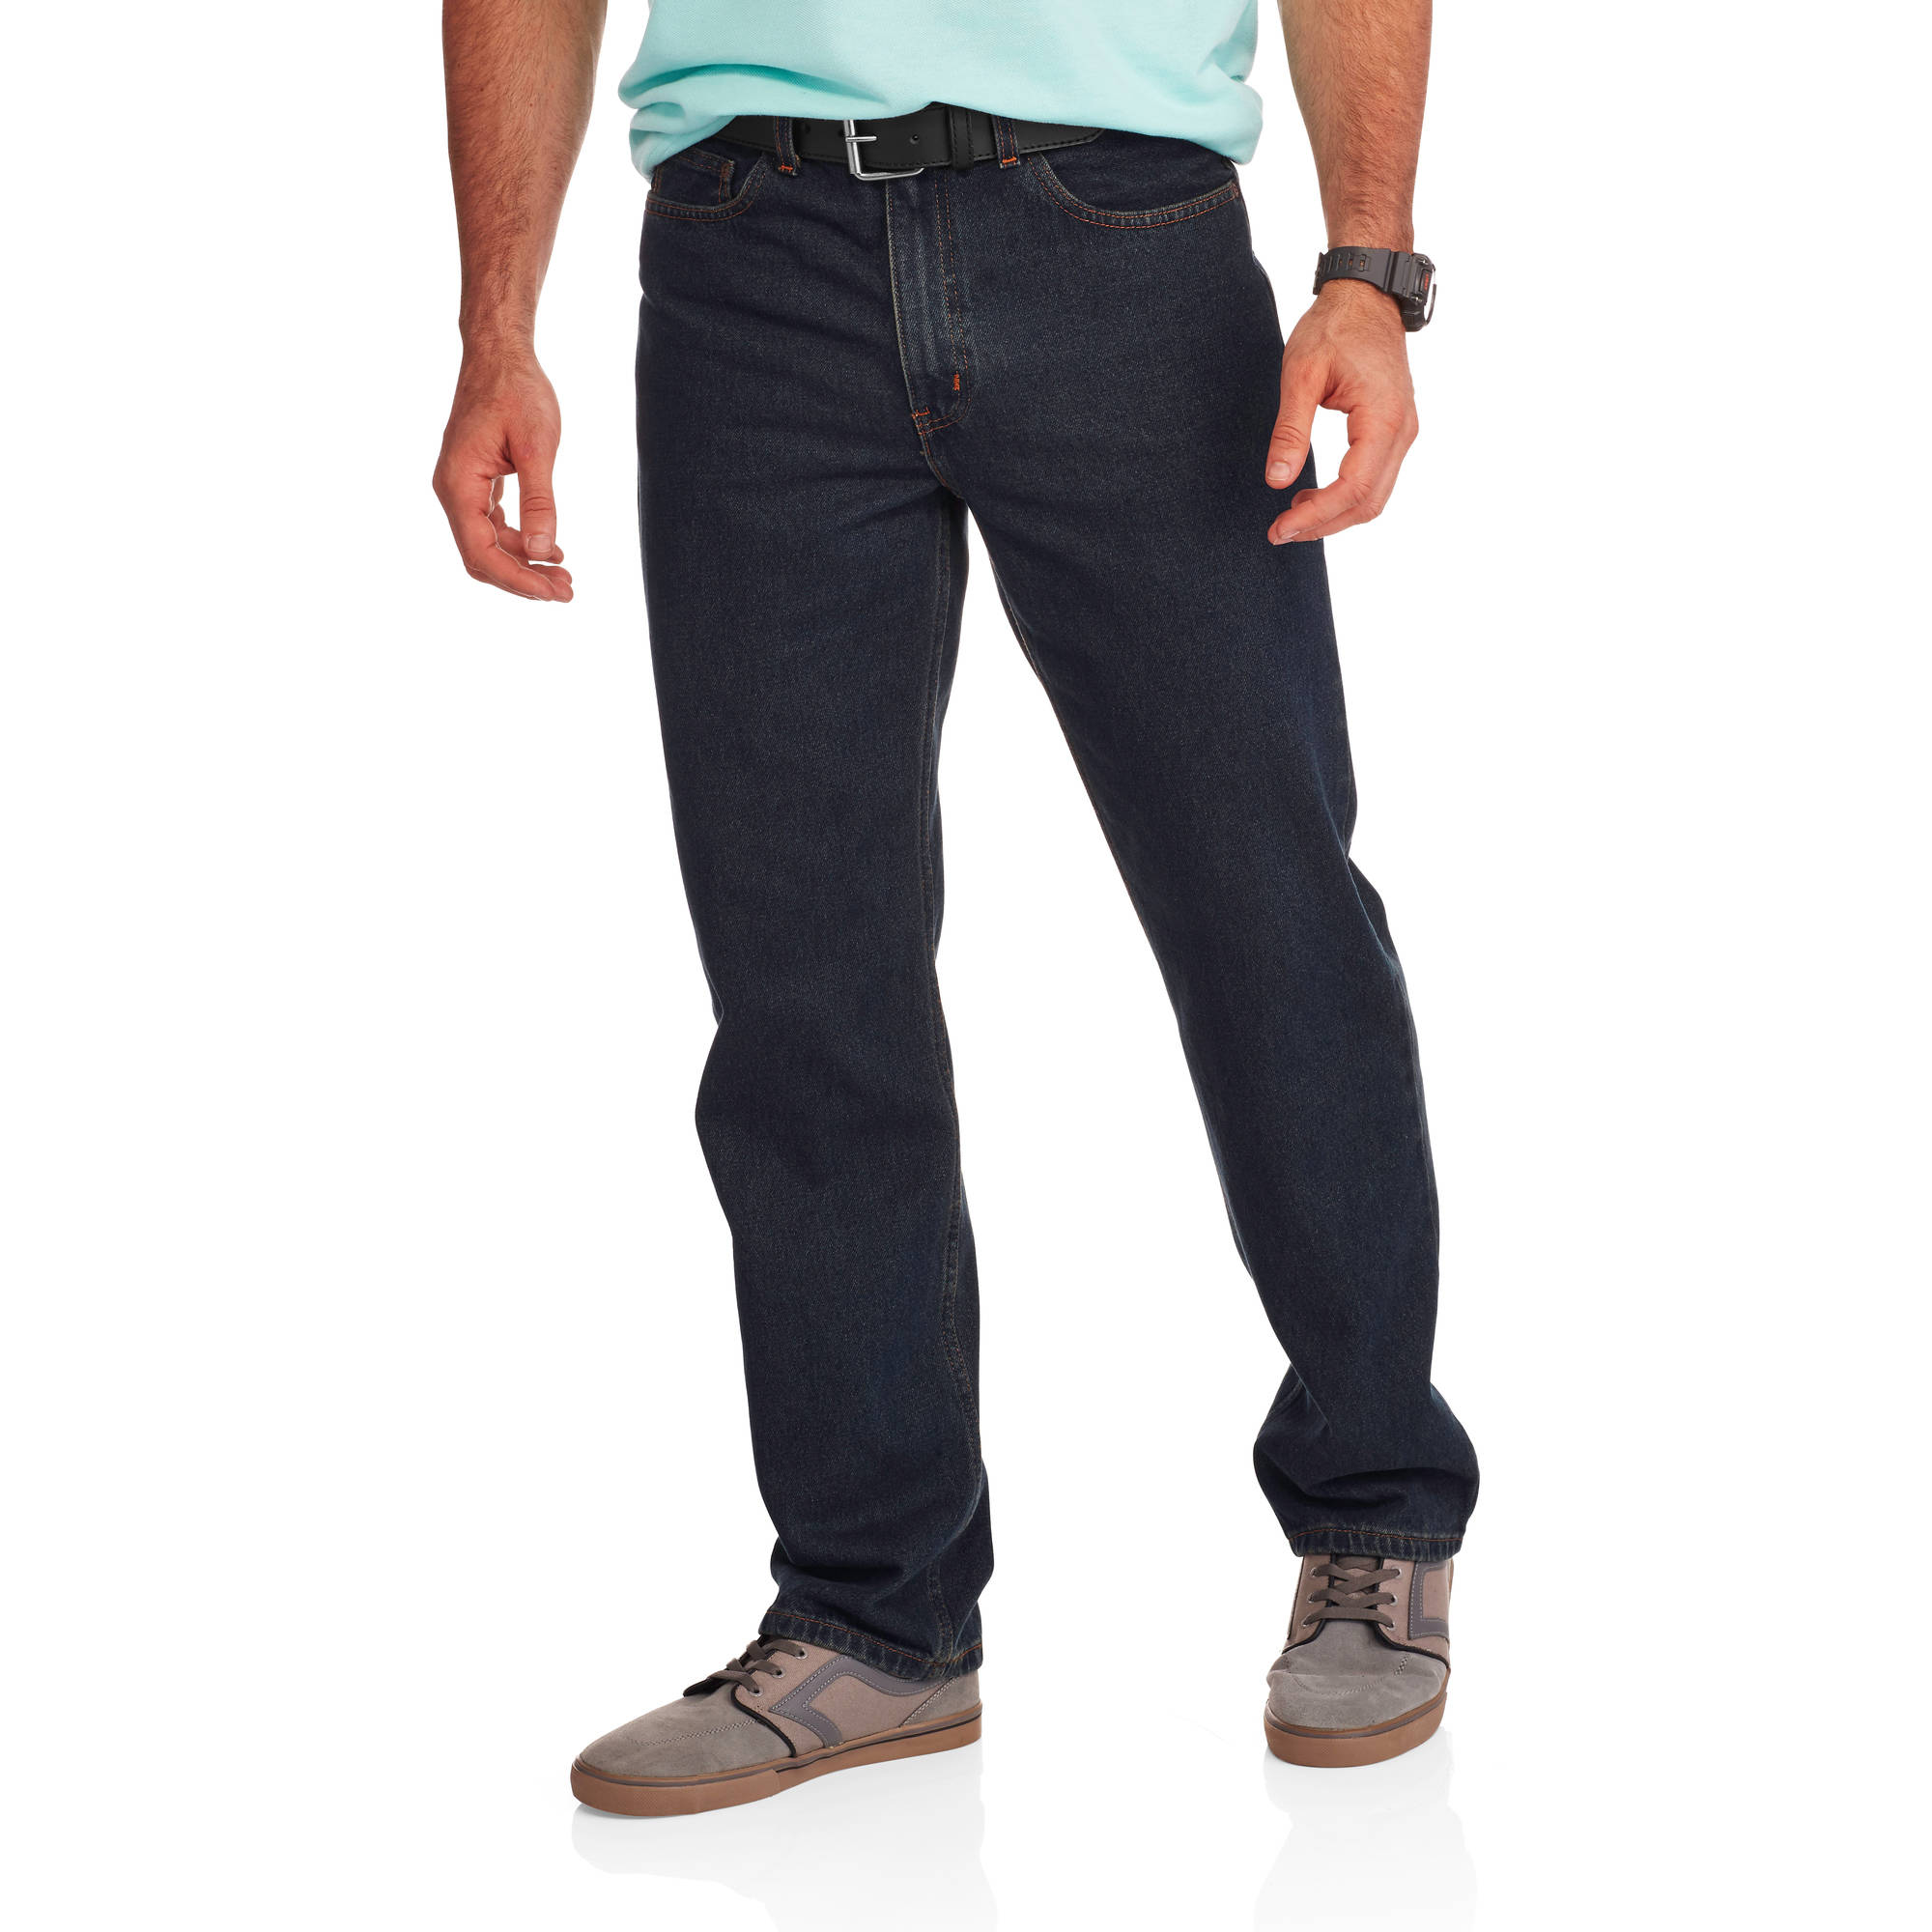 Faded Glory Men's Relaxed Jeans